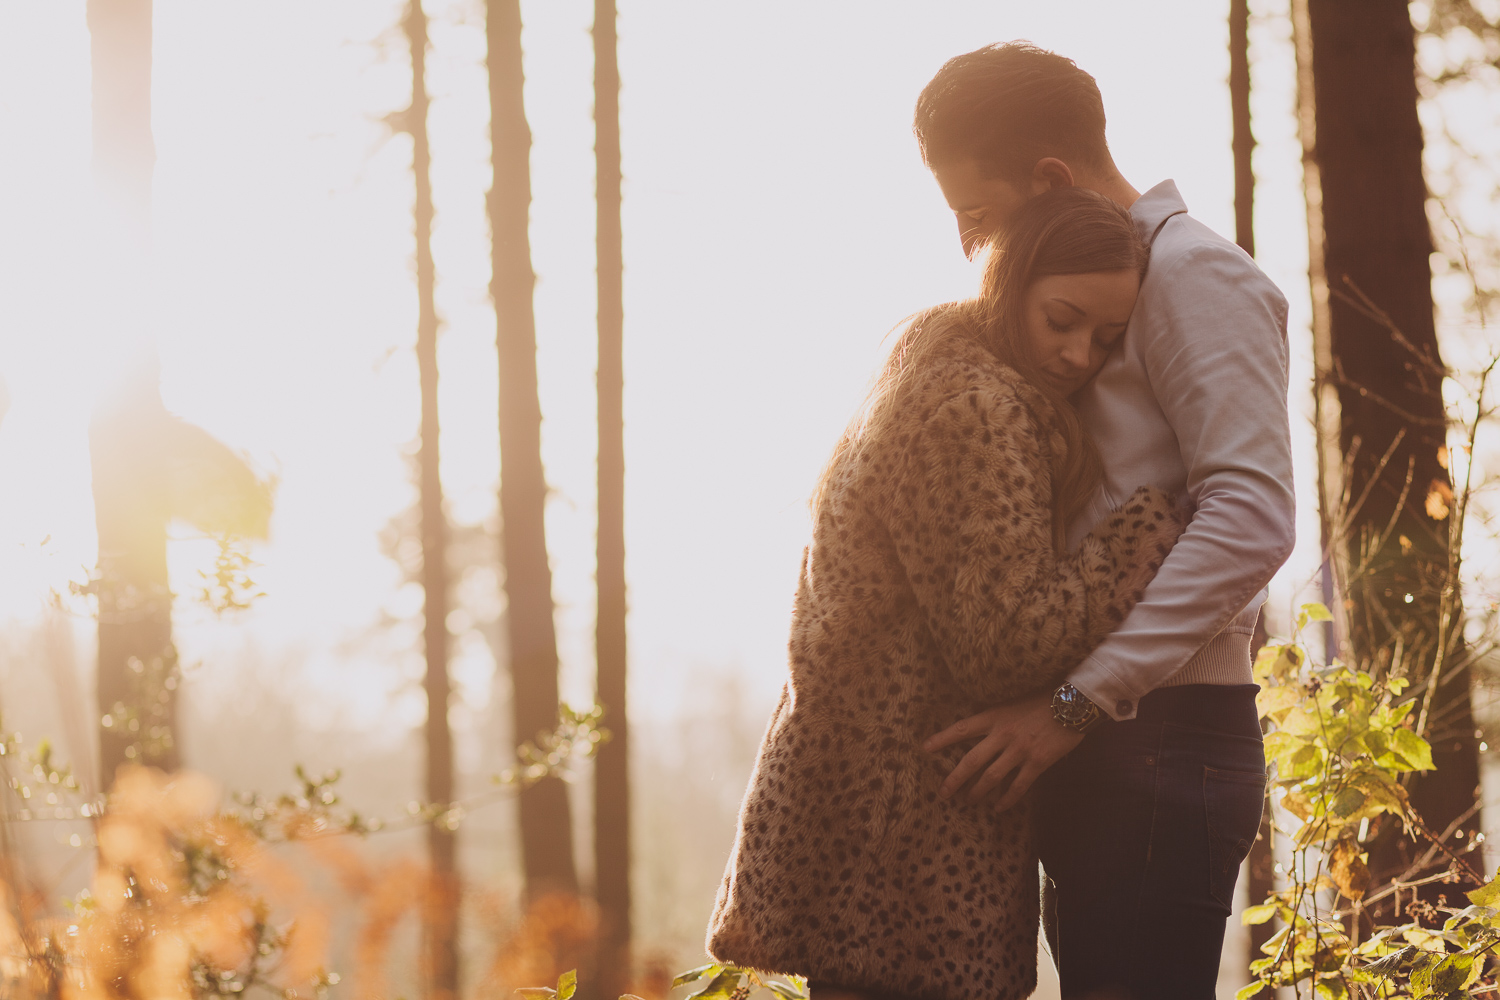 Engaged couple cuddling in a wood, bathed in sunlight in Newcastle upon Tyne